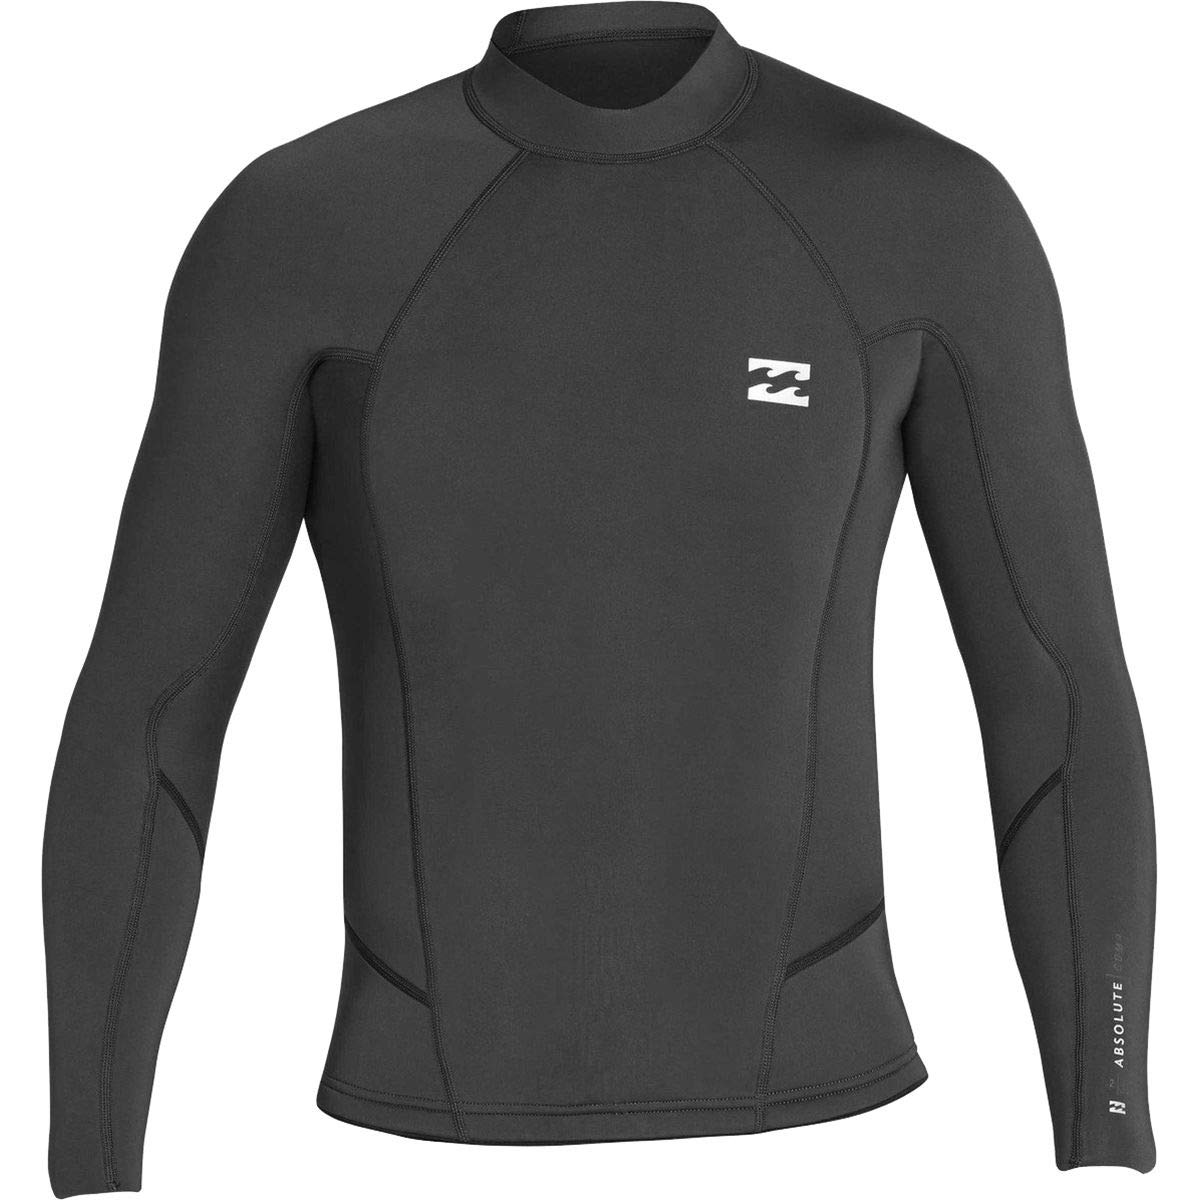 Billabong - Mens 202 Absolute Comp Long Sleeve Wetsuit, Size: Small, Color: Black by Billabong